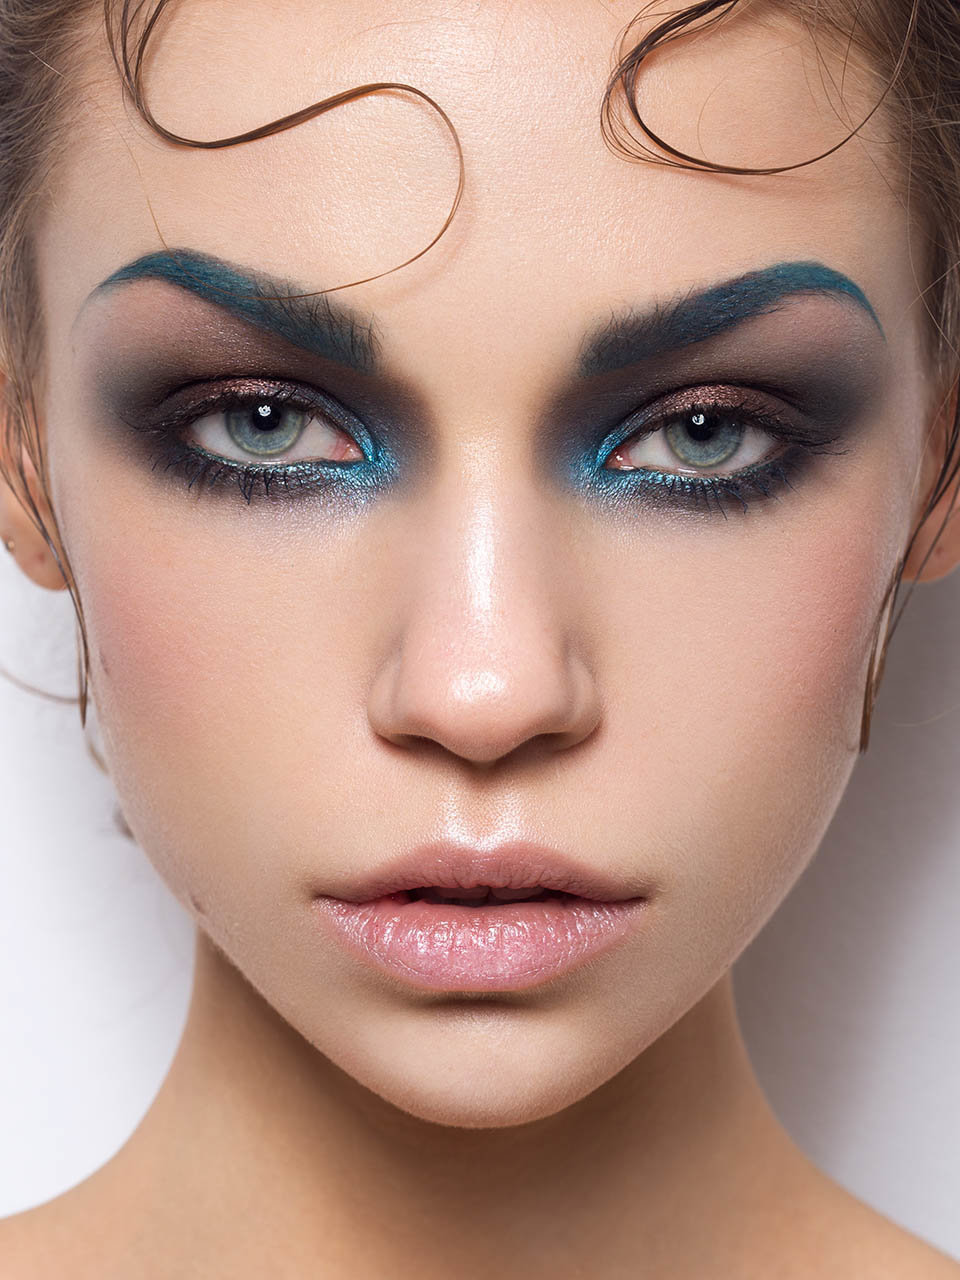 Makeup Tips and Ideas - Latest Make Up Looks and Products InStyle 24